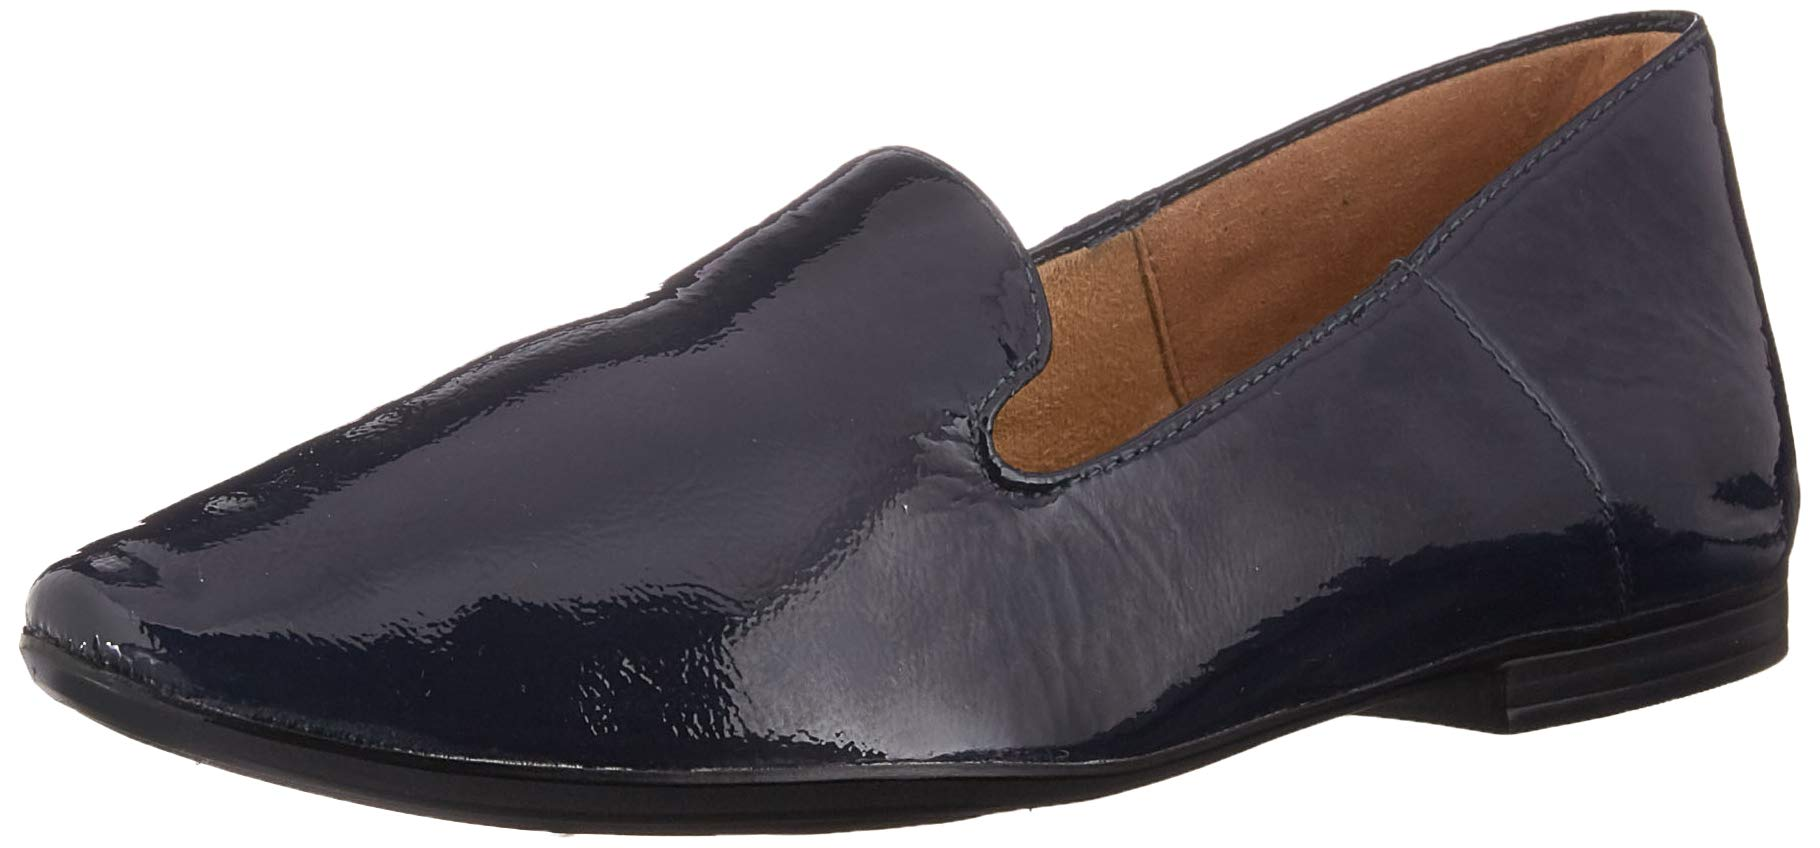 Naturalizer Women's Lorna Ballet Flat, Inky Navy Patent, 8 M US by Naturalizer